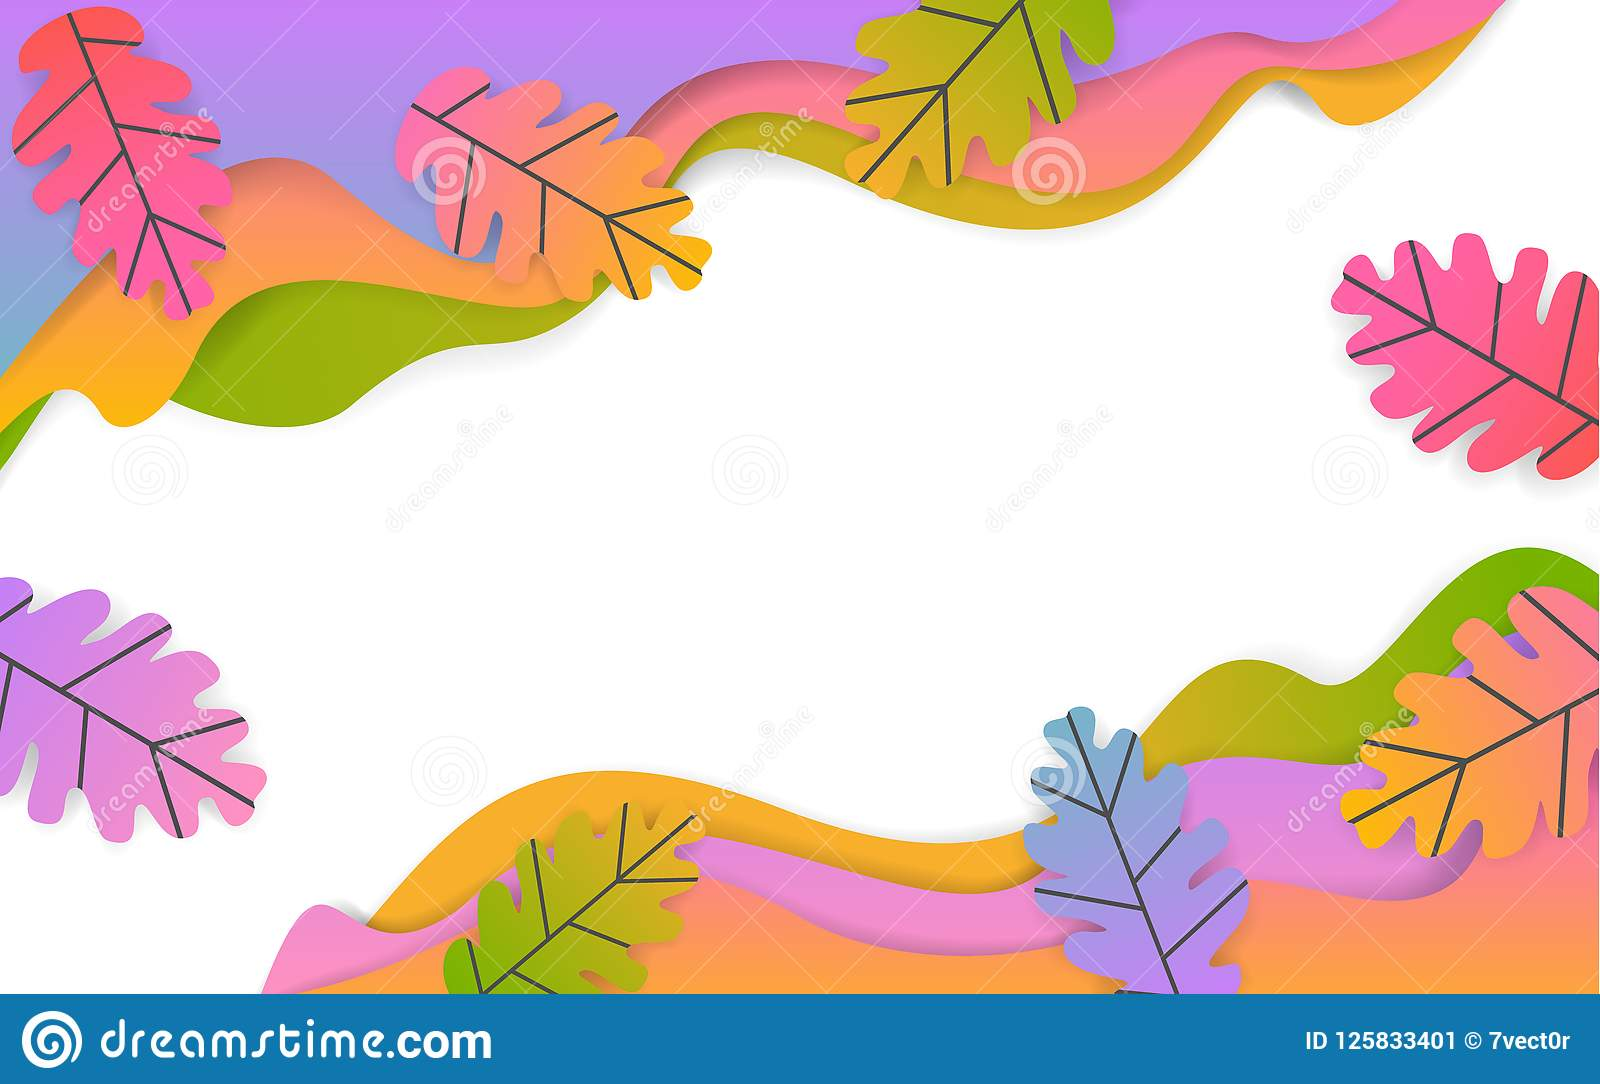 Fall thanksgiving seasonal wavy paper cut style banner with gradient colored oak leaves